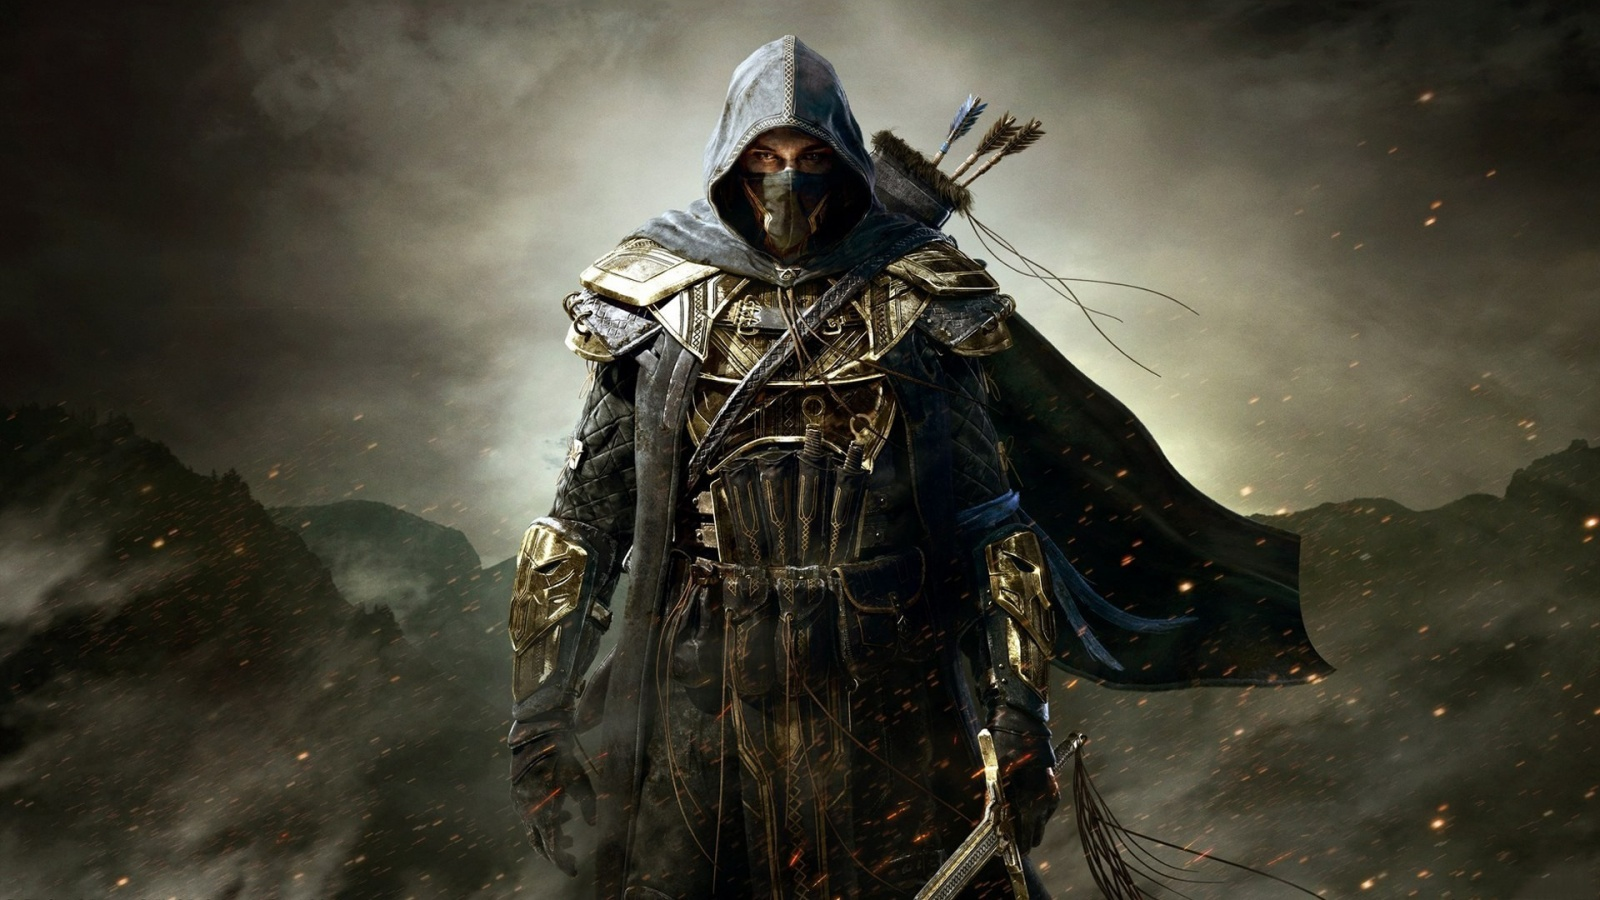 Thief Customization options in the game-N2G